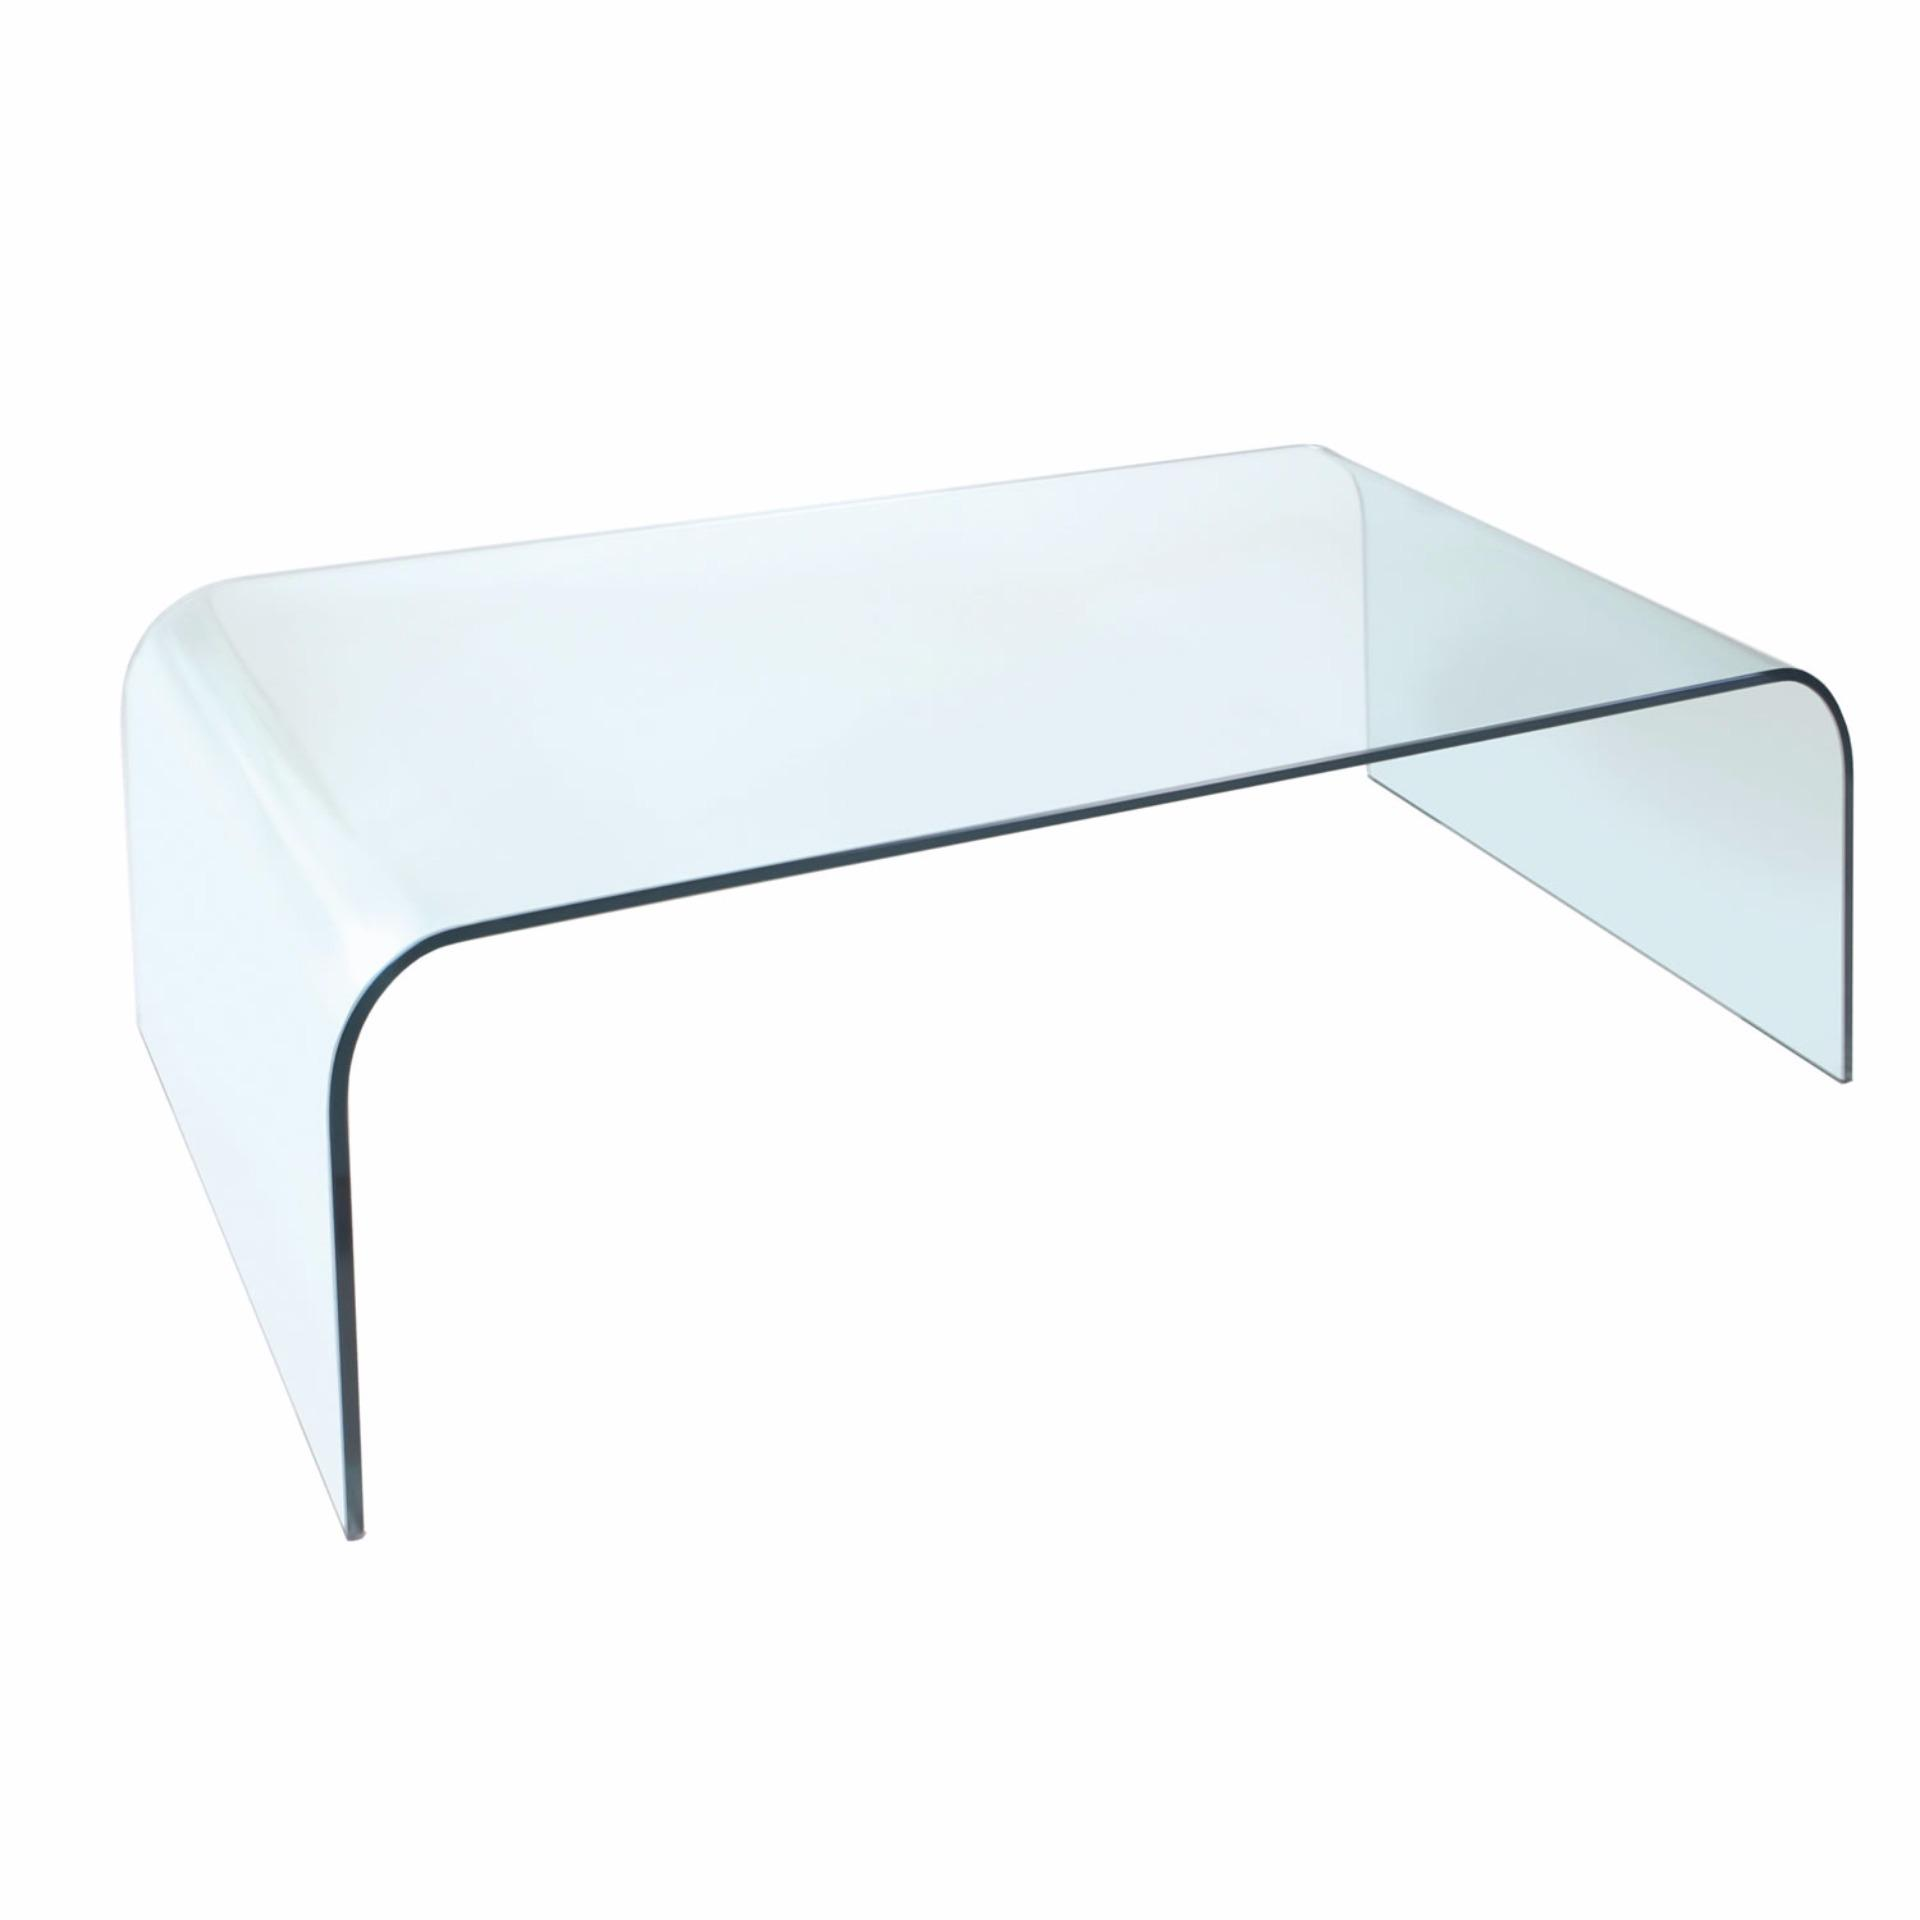 "tempered glass coffee table tempered glass coffee table 420"" x"